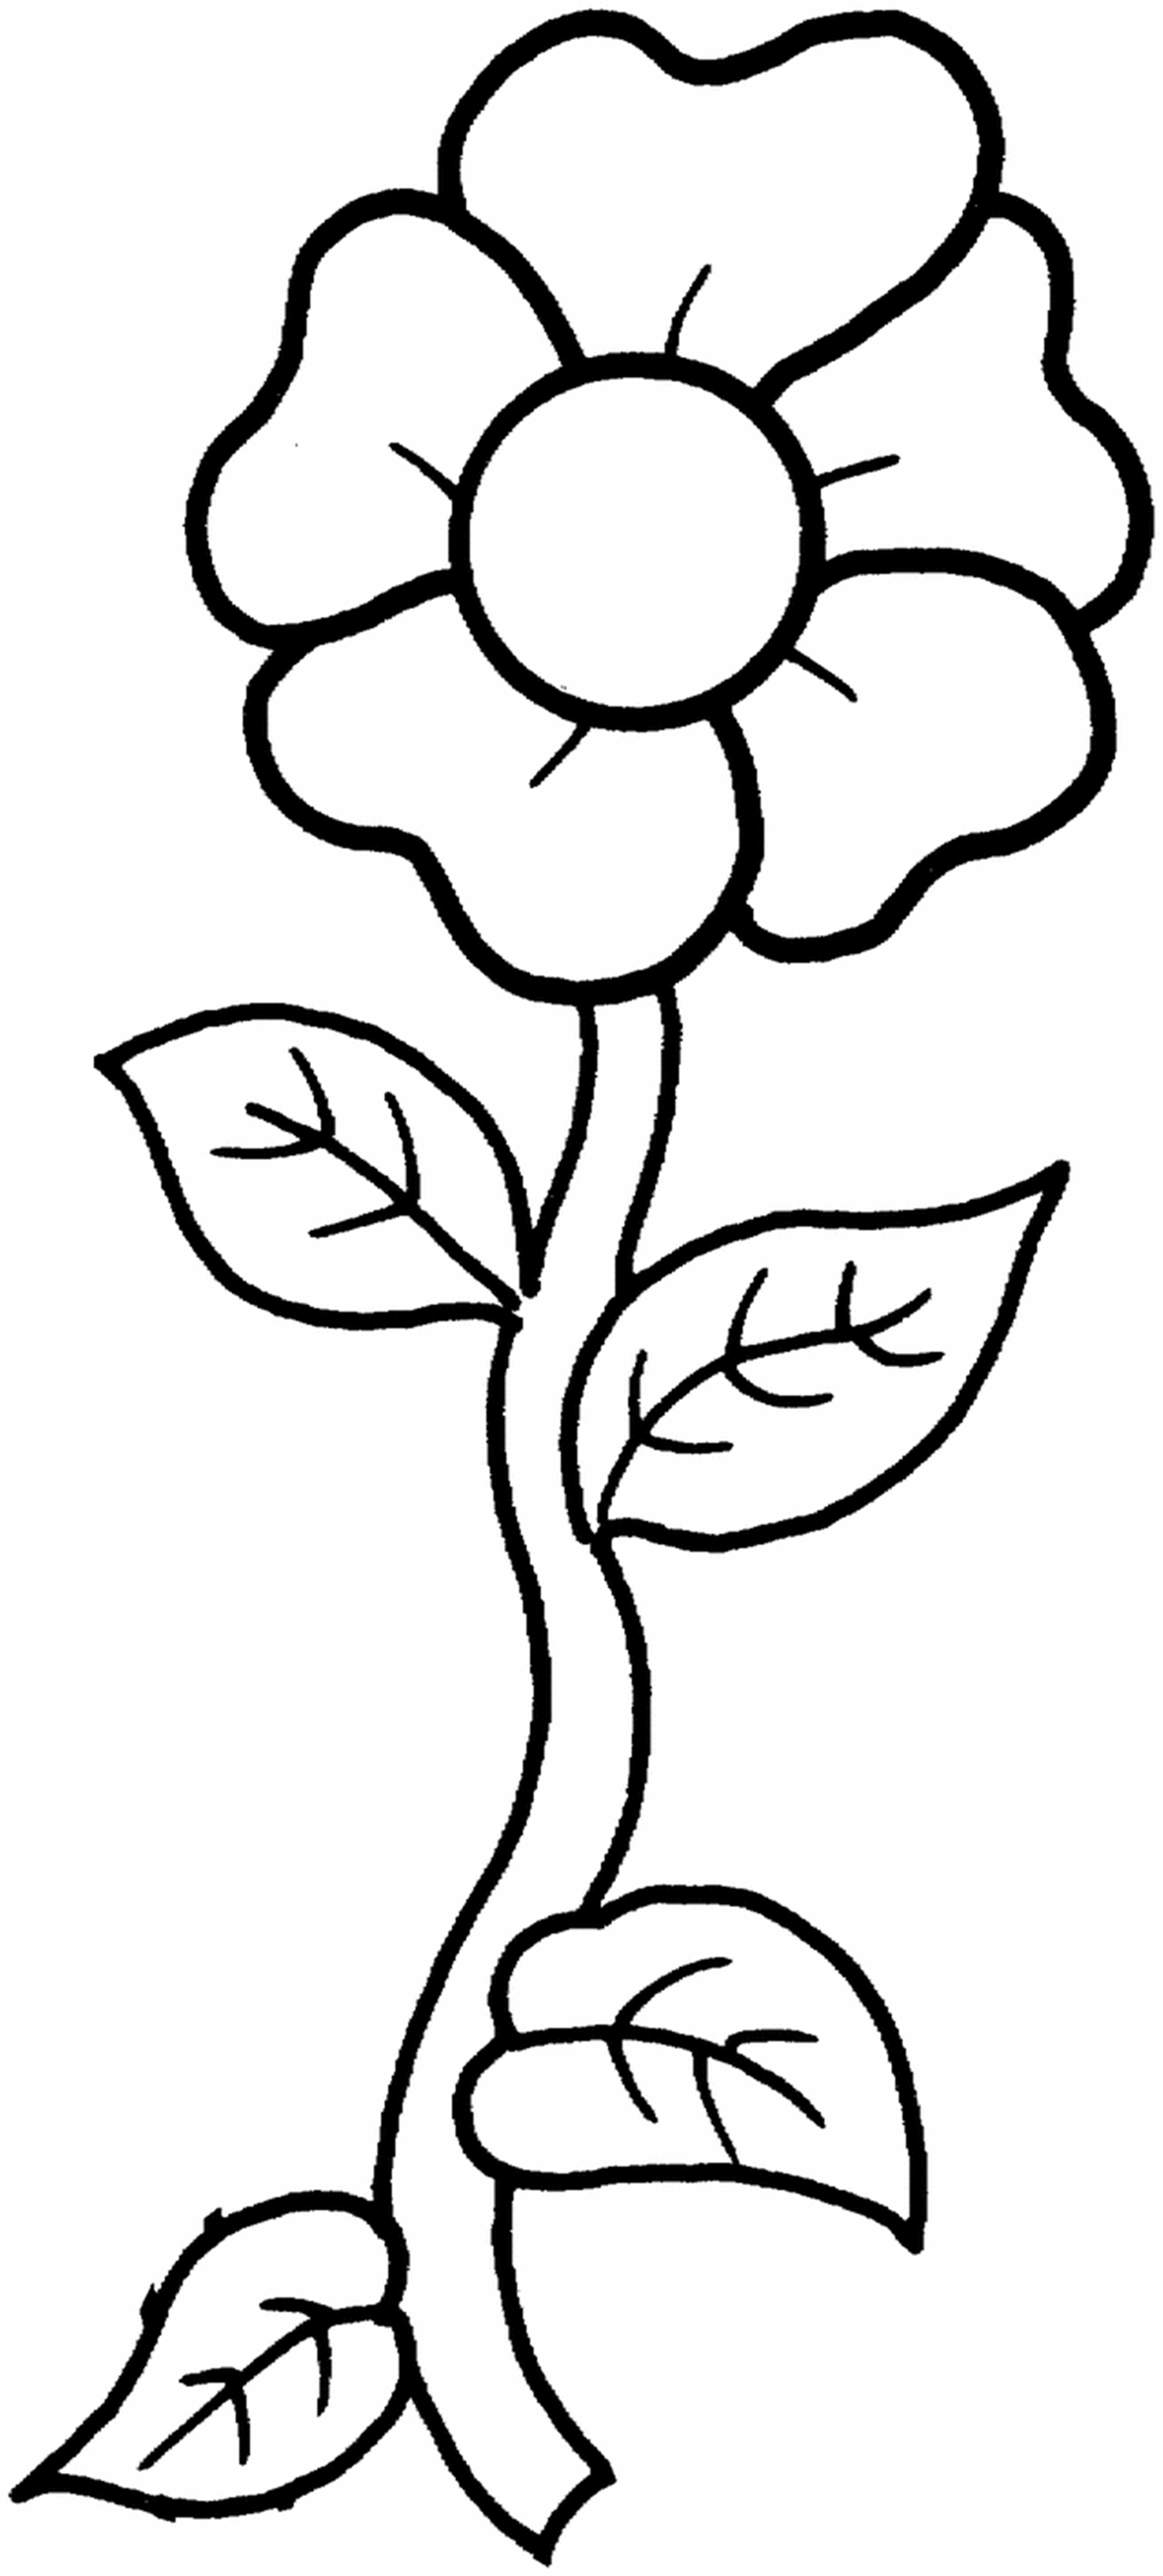 printable flower free printable flower coloring pages for kids best flower printable